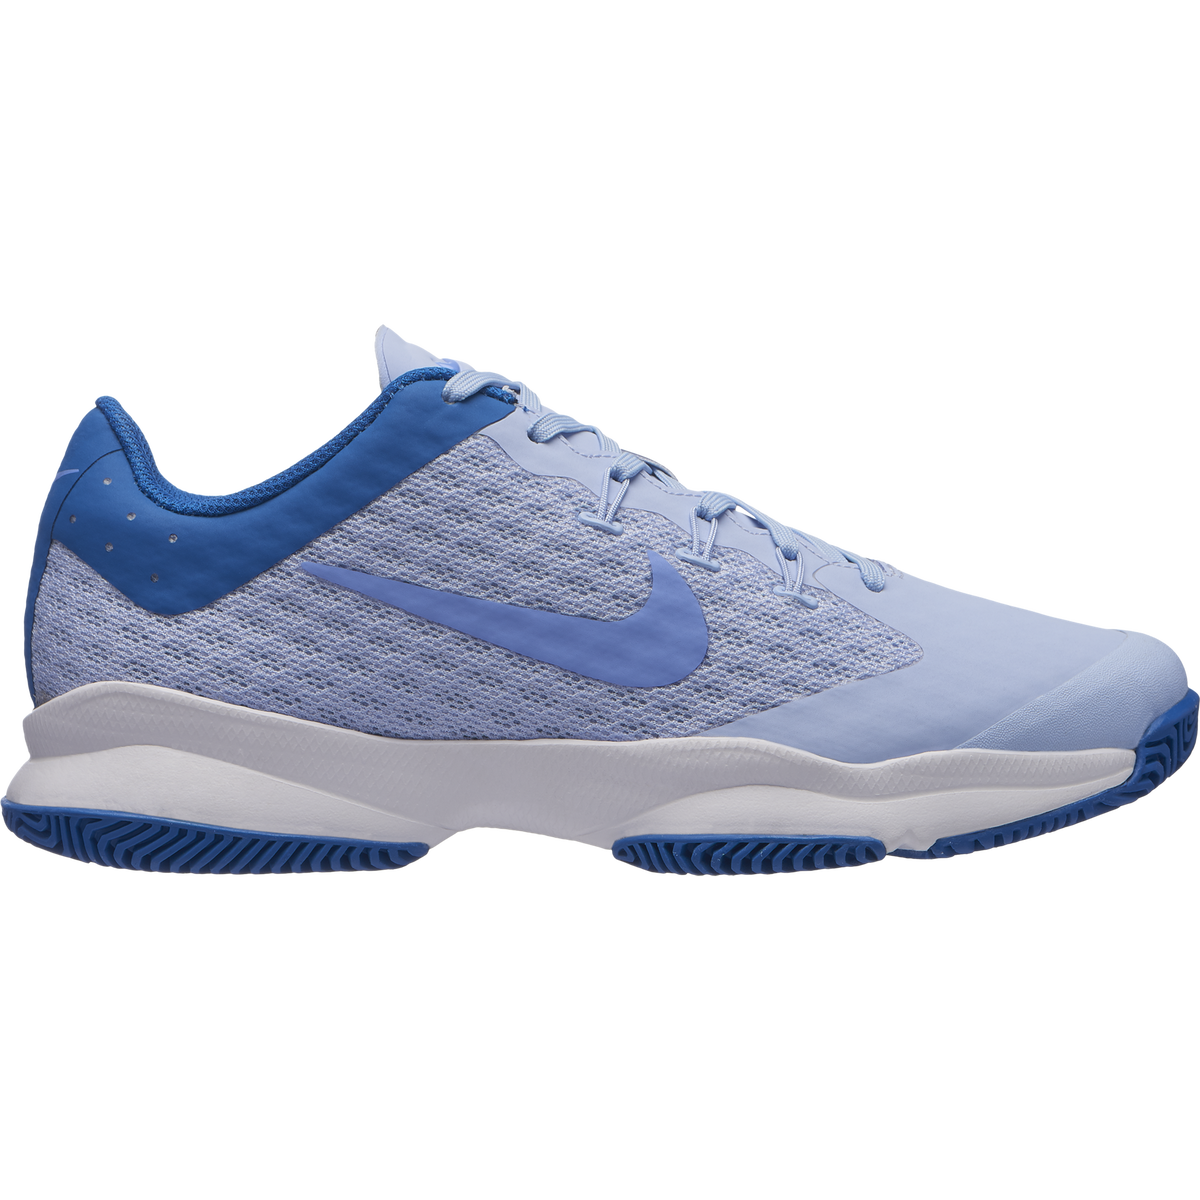 reputable site 31a09 fd985 Images. Nike Air Zoom Ultra Women  39 s Tennis Shoe ...